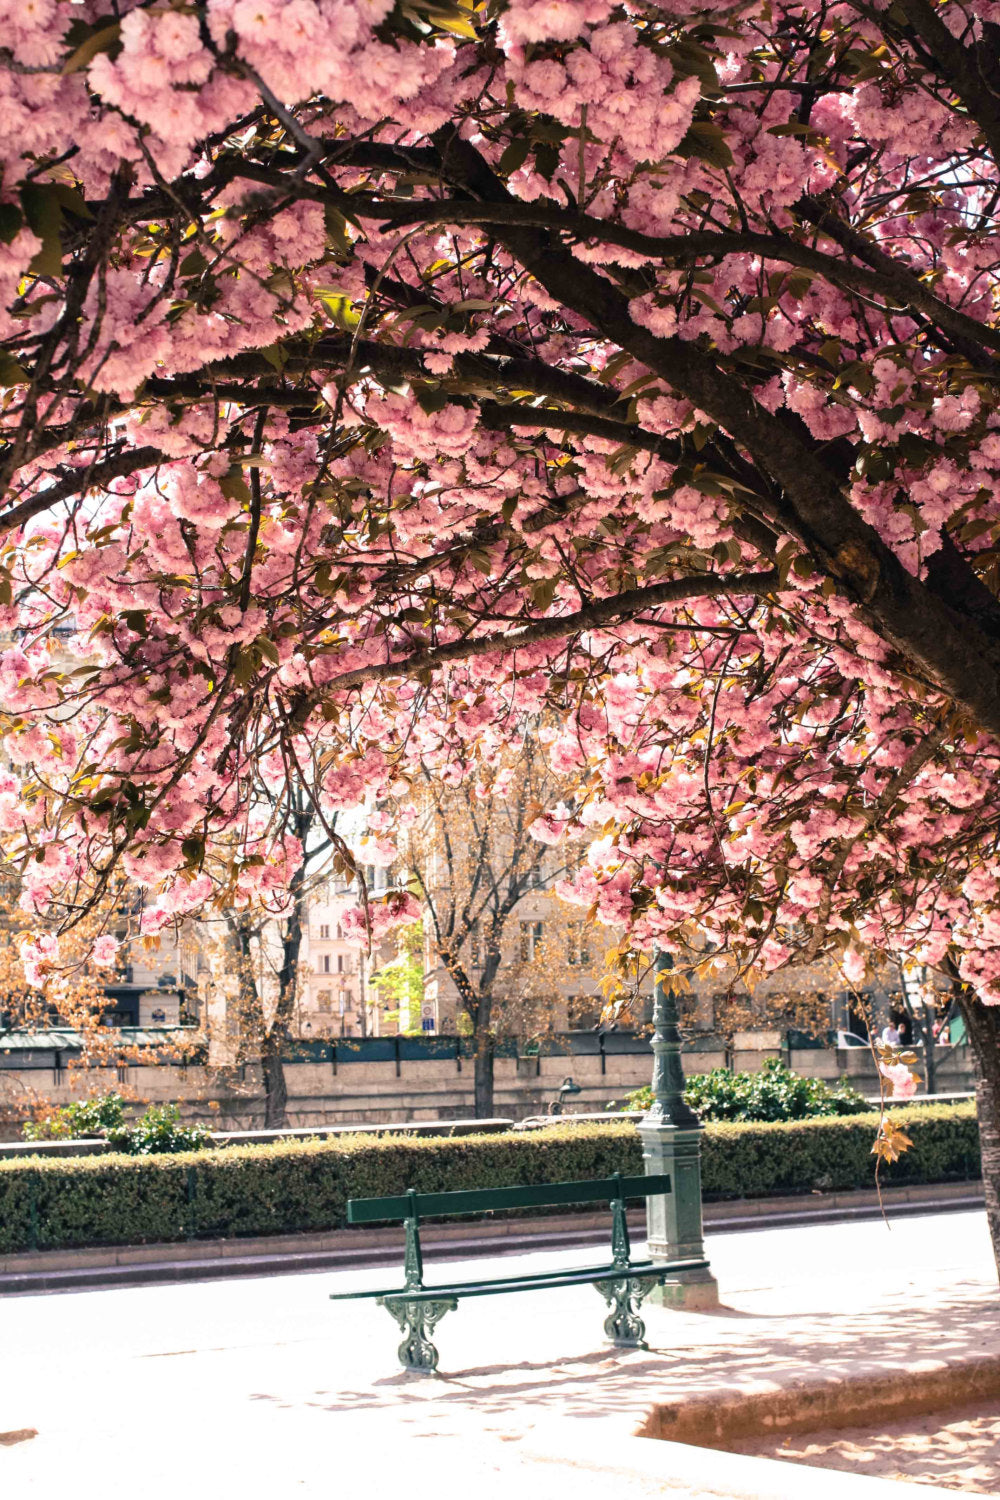 Underneath the Cherry Blossoms in Paris